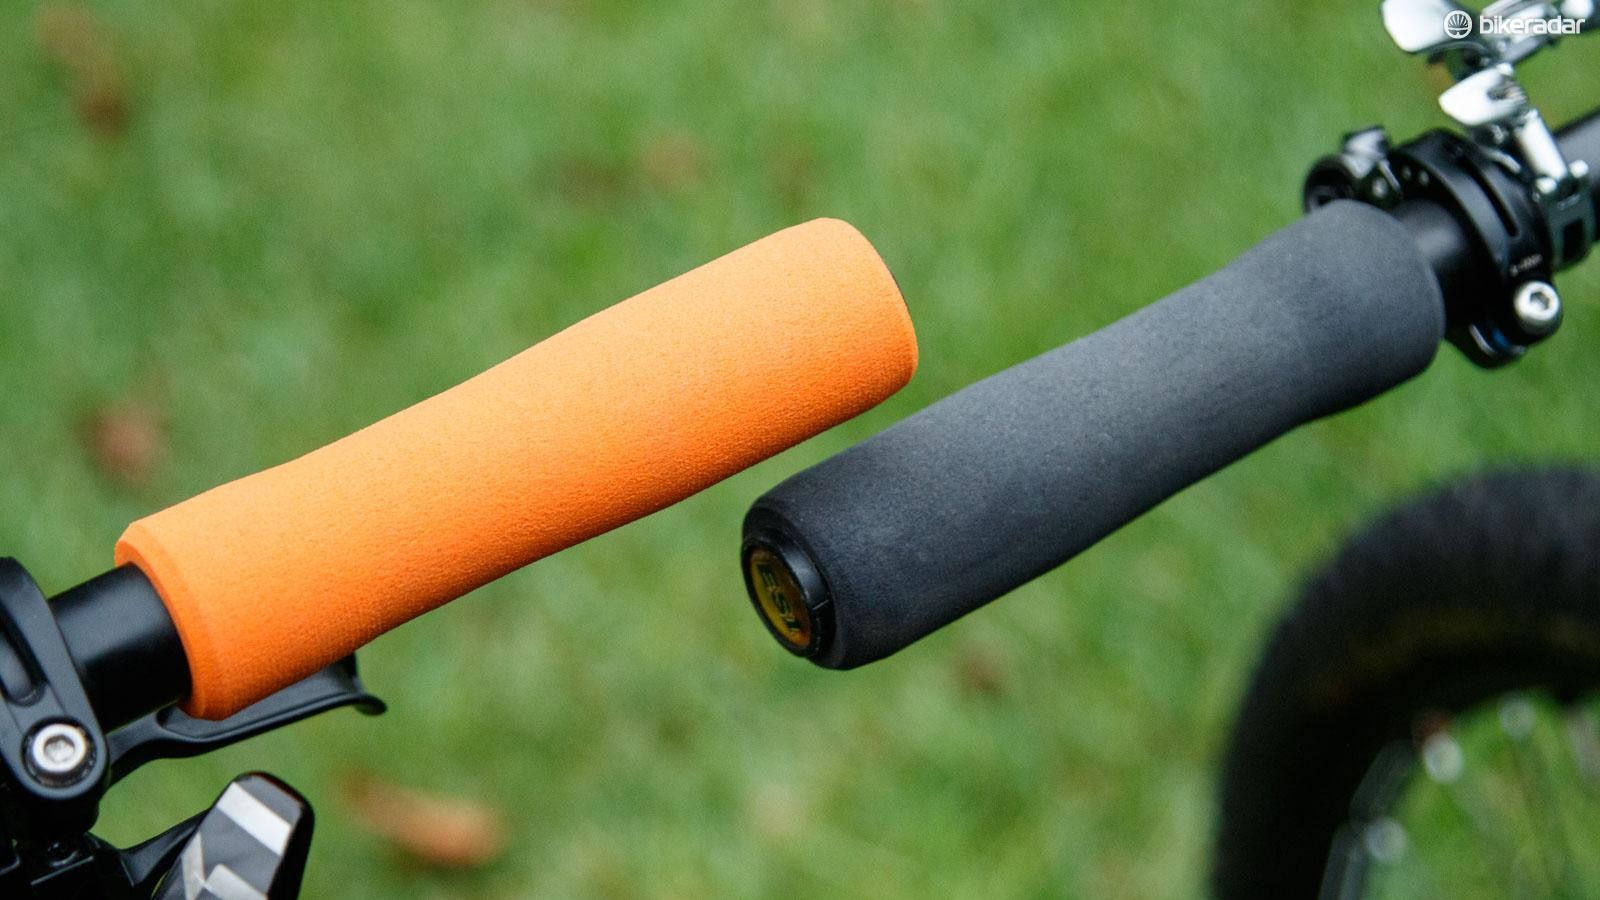 ESI has grown its range plenty since its original two grips. The Fit grips come in two thickness options, the thinner CR (left) or the thicker XC (right)